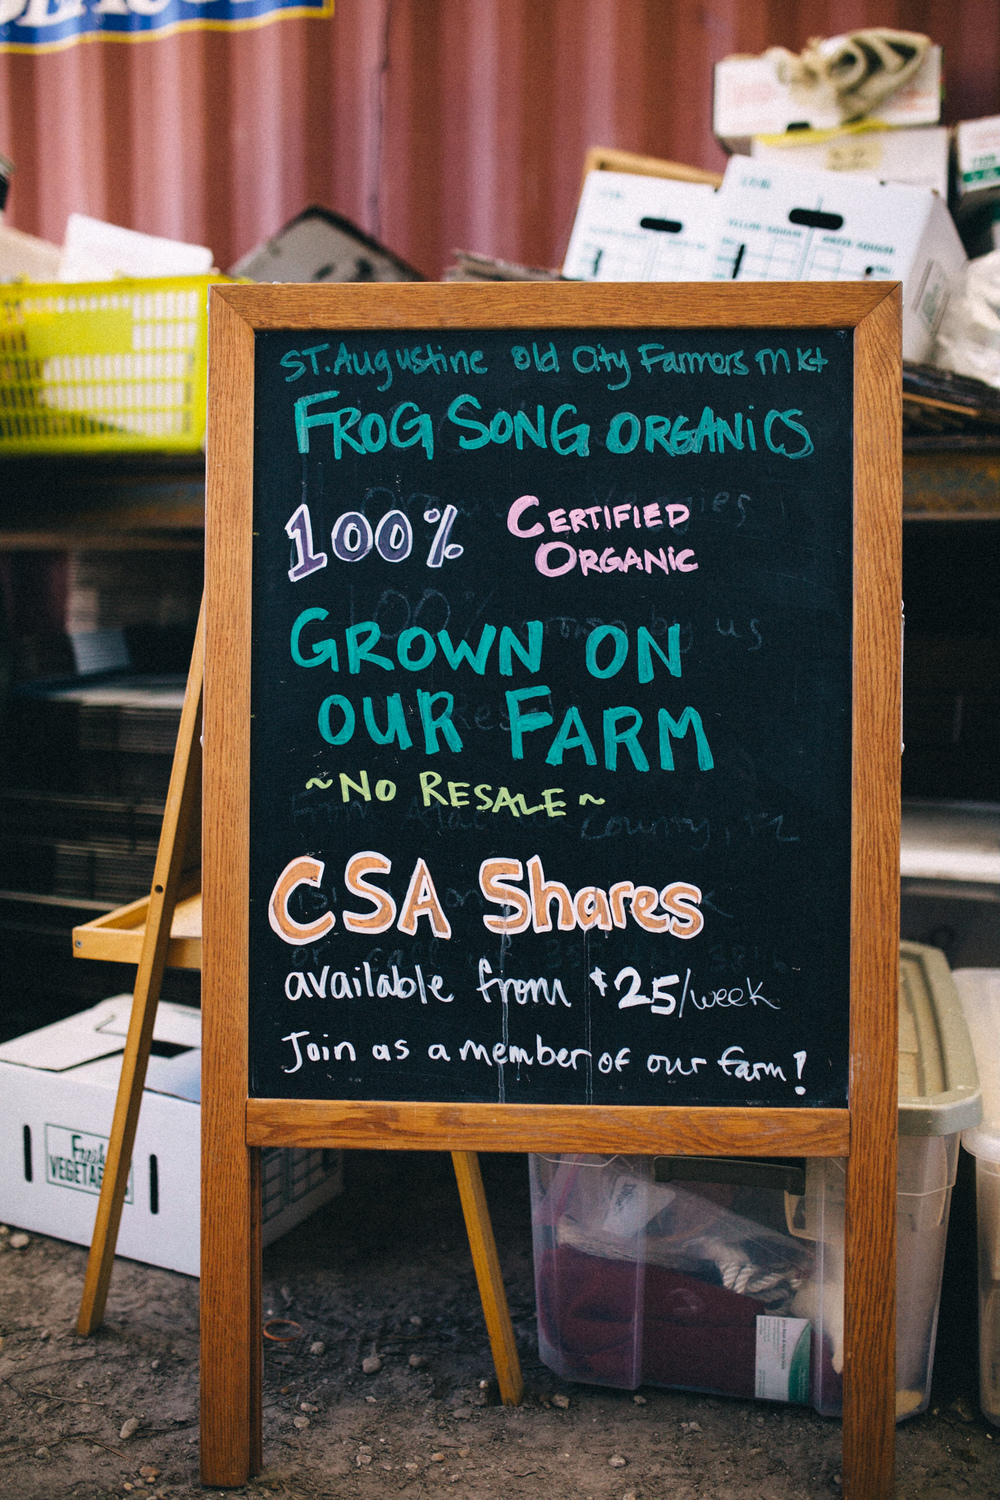 Frog Song Organics promoting their CSA program at the St. Augustine Old City Farmers Market.